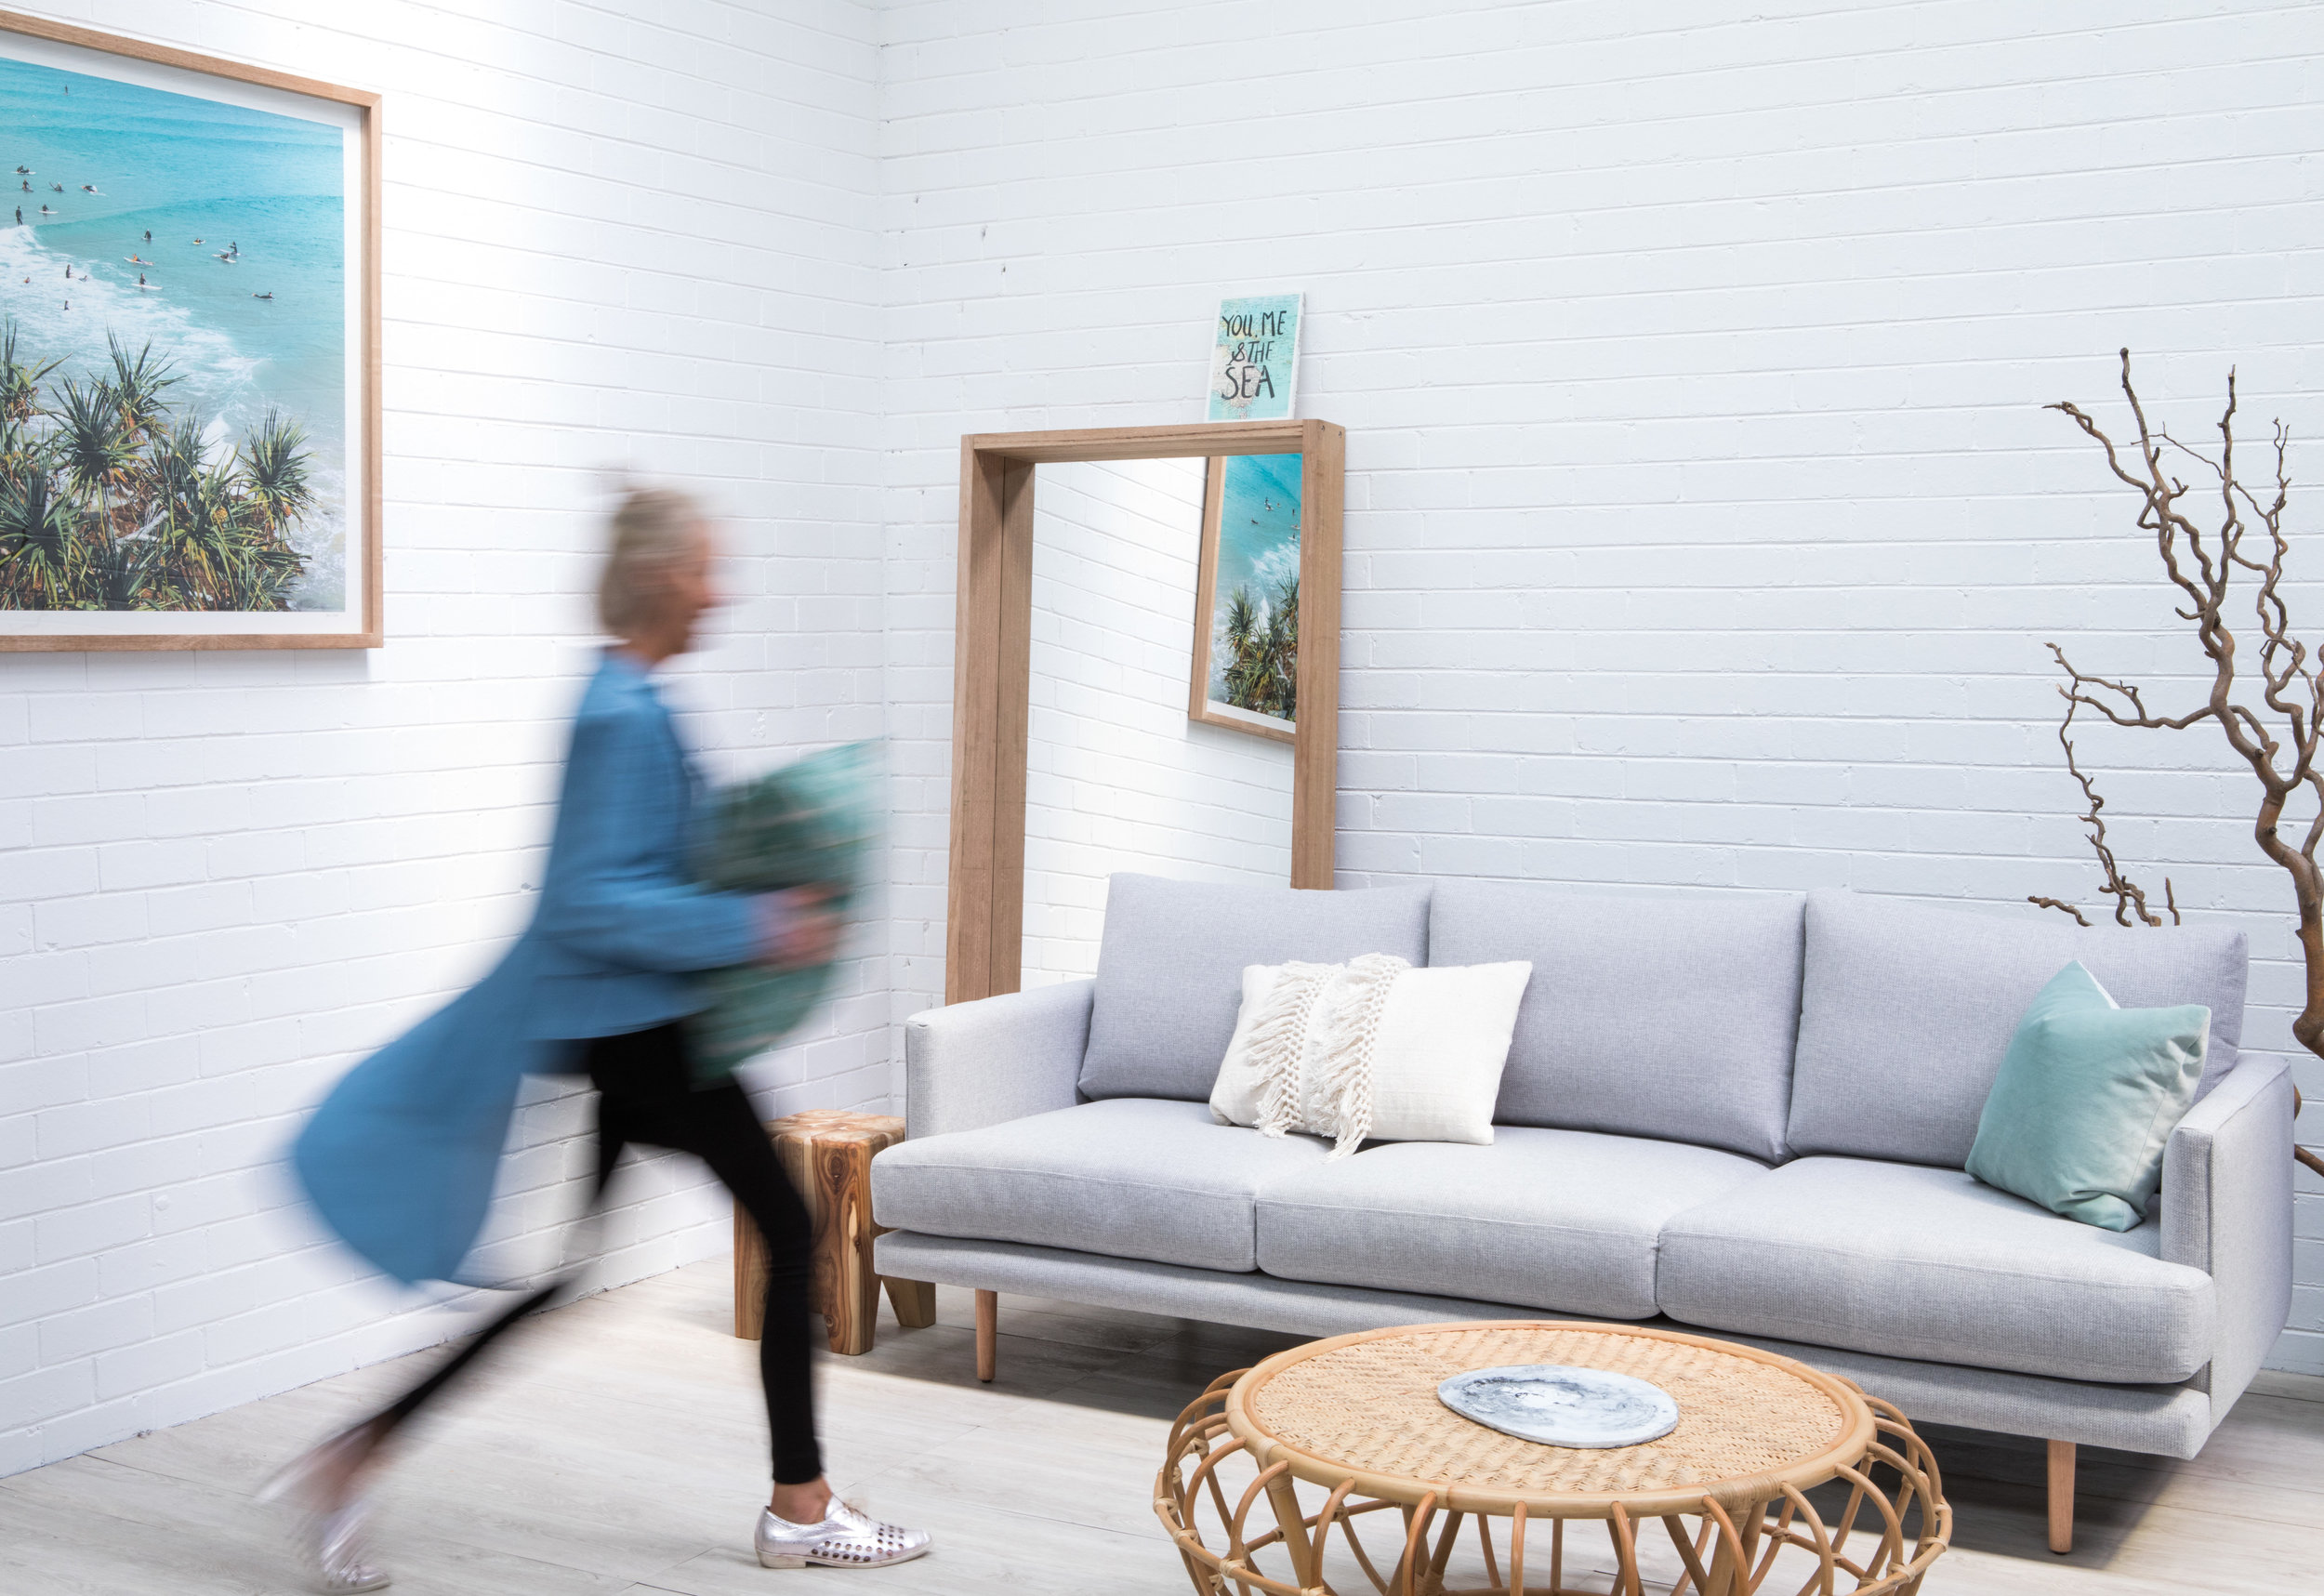 PROJECT @ THE CULLIN DESIGN  STYLING BY - THE CULLIN INTERIORS  PHOTOGRAPHY - THE STUDIO MELBOURNE